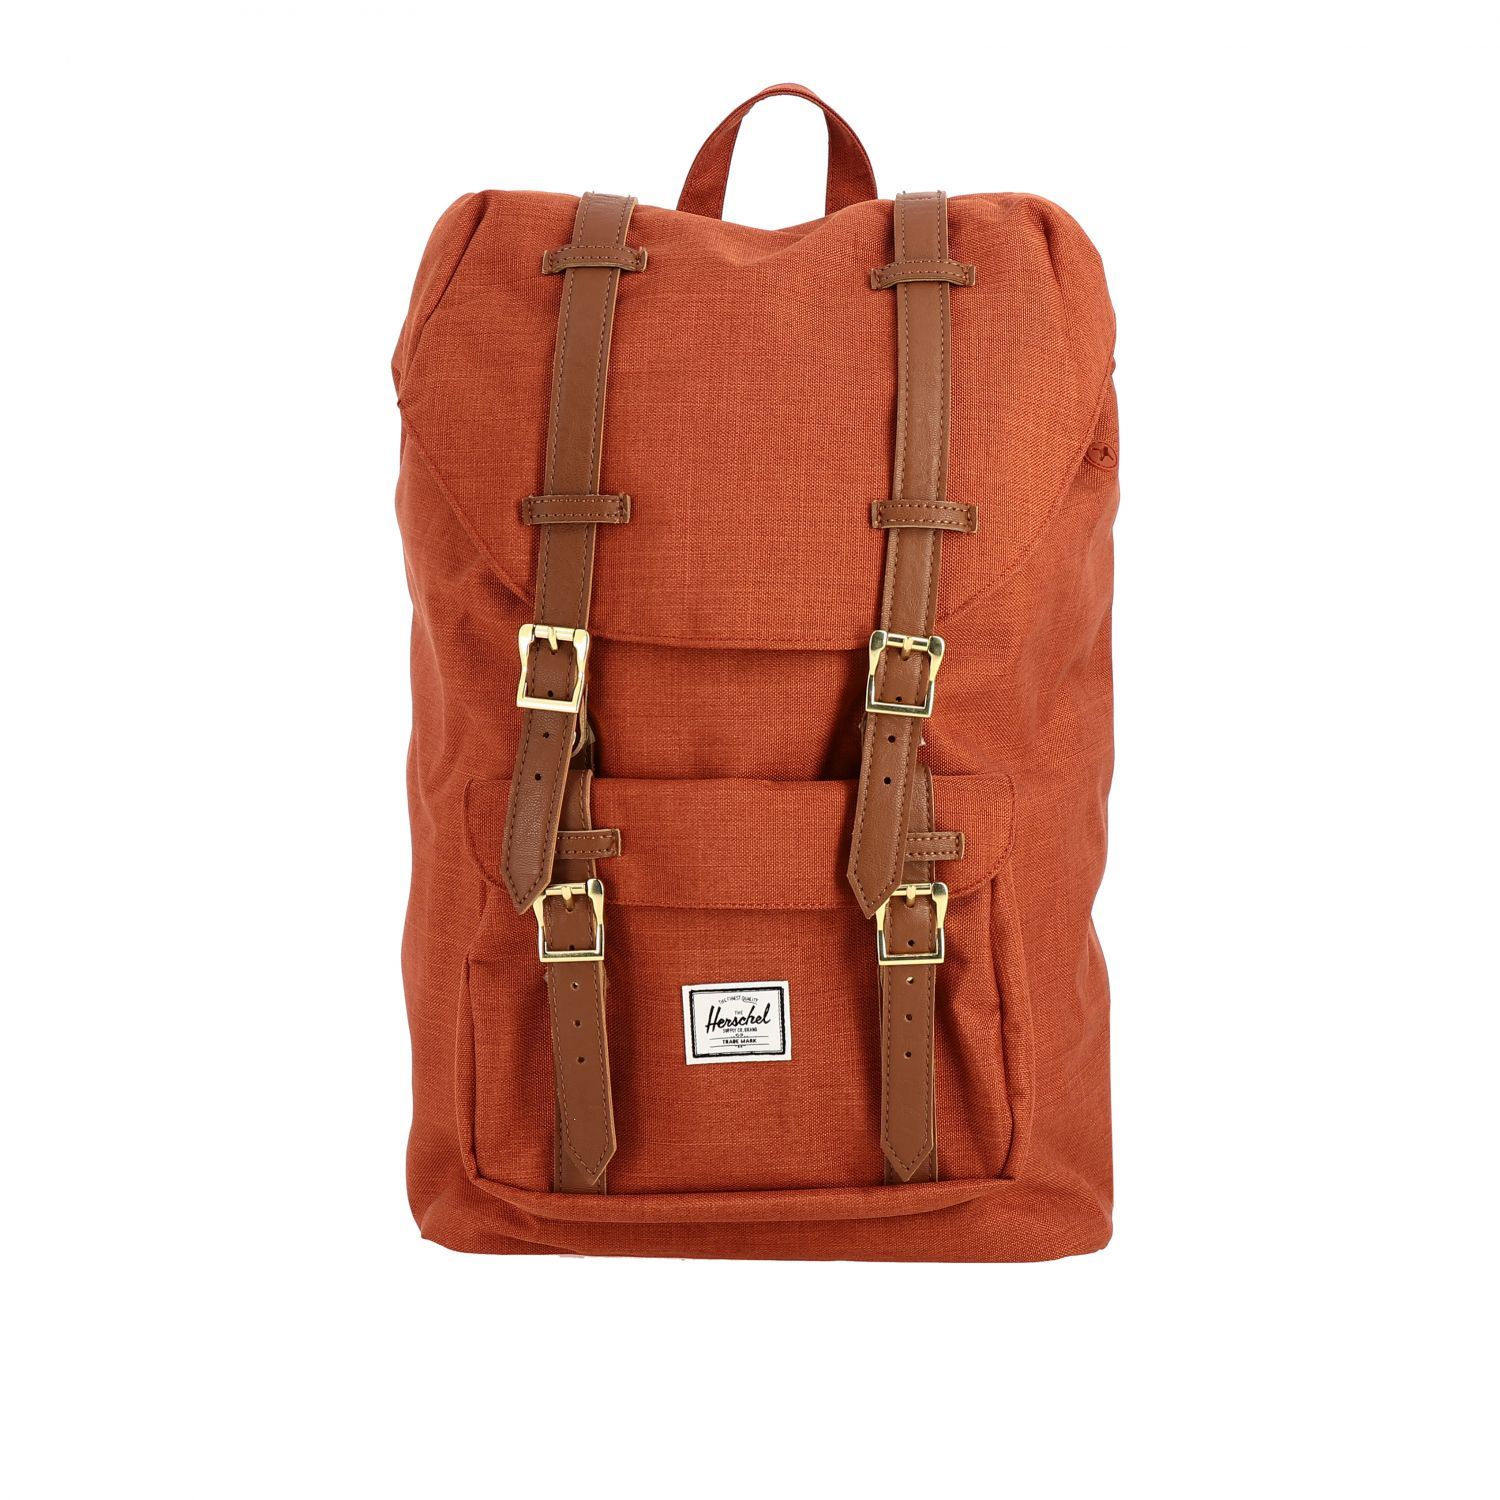 Sac à dos homme Herschel Supply Co. rouille 1